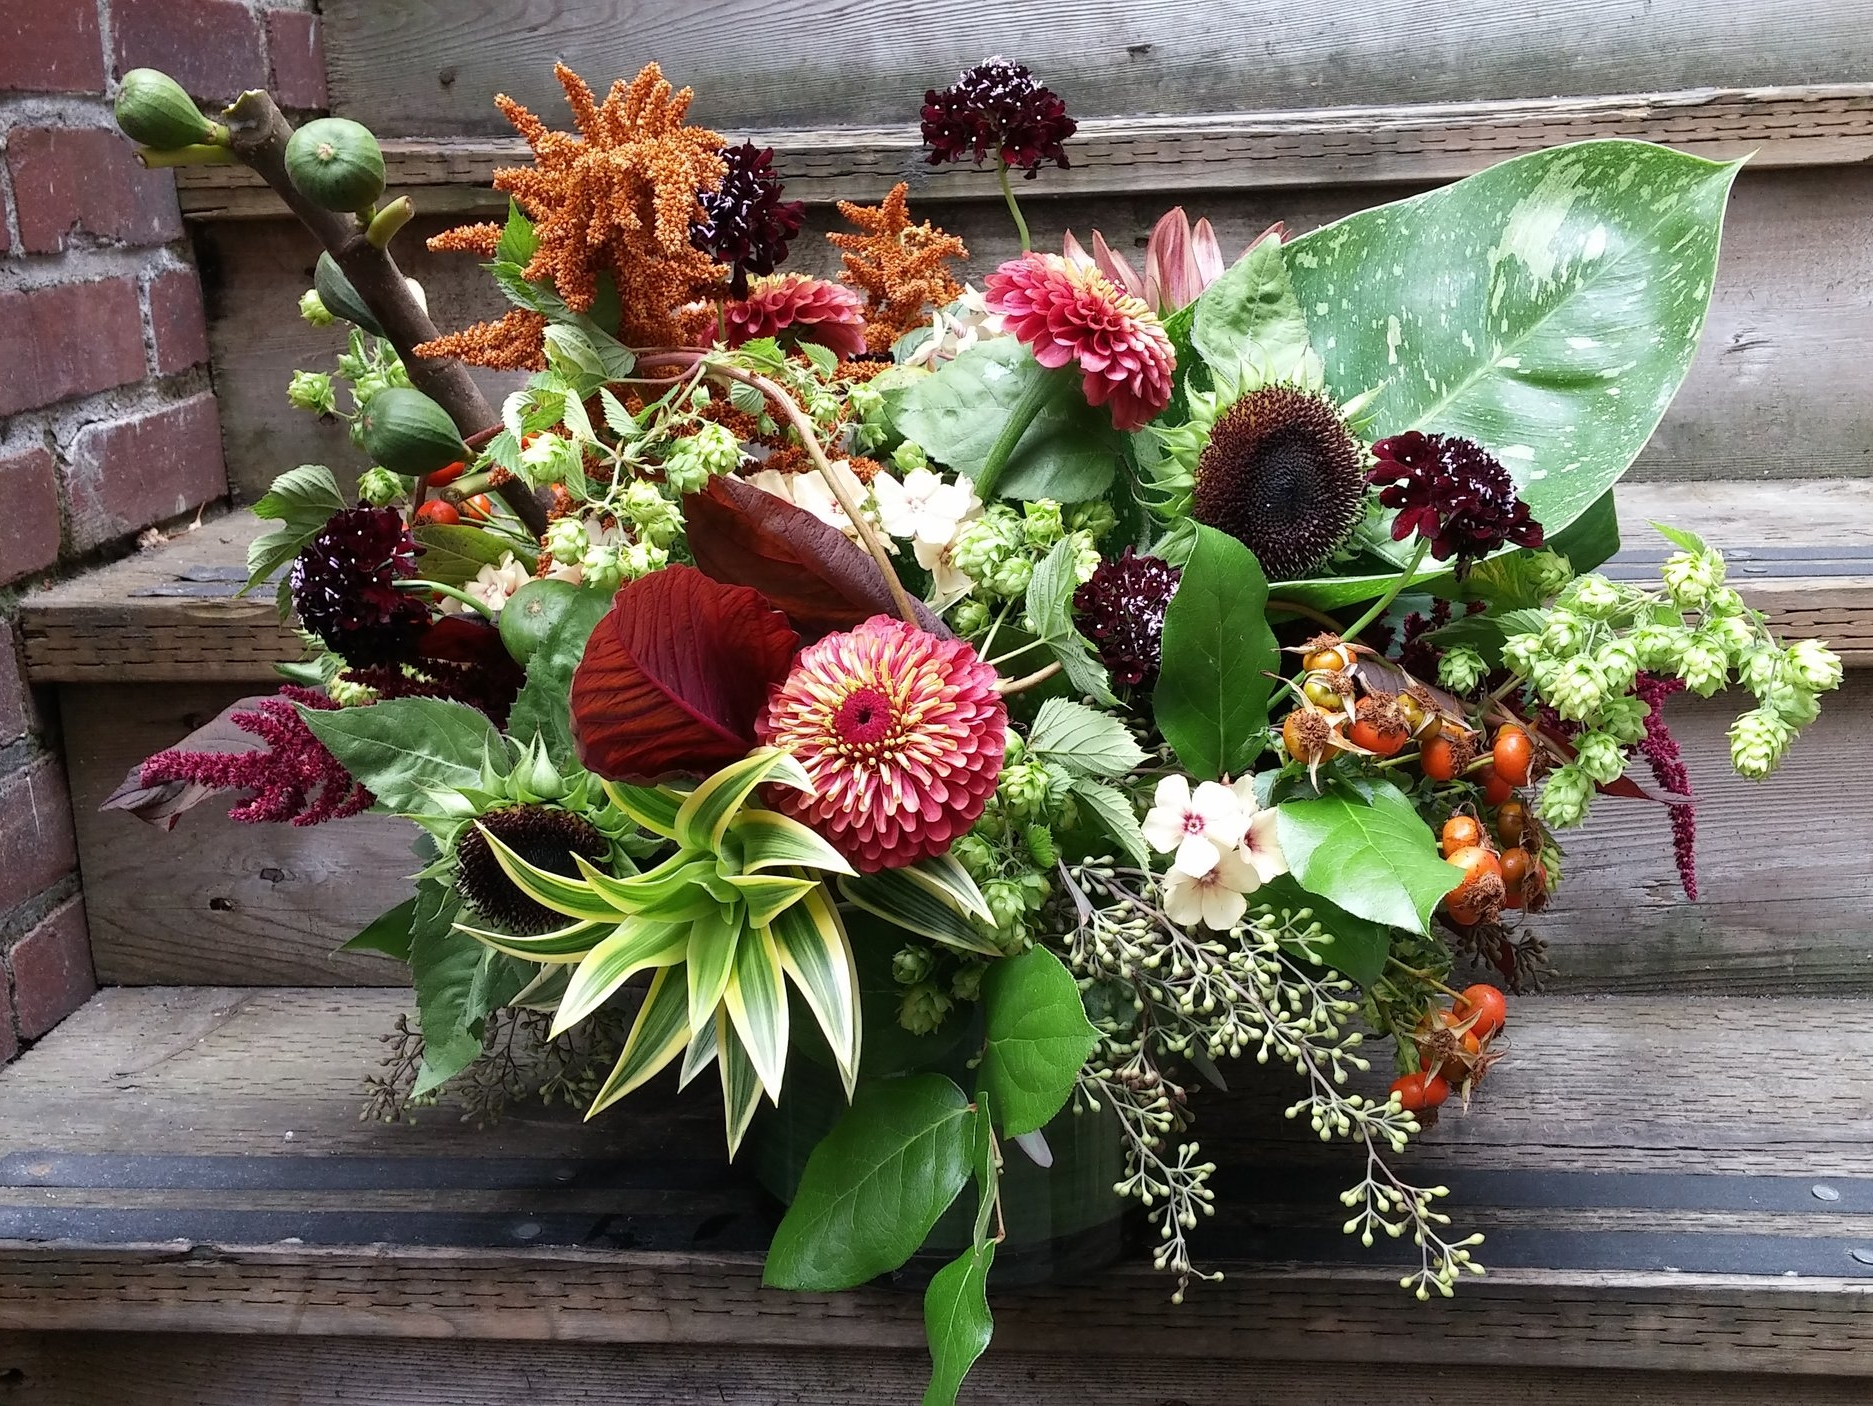 1. Early Fall Showstopper